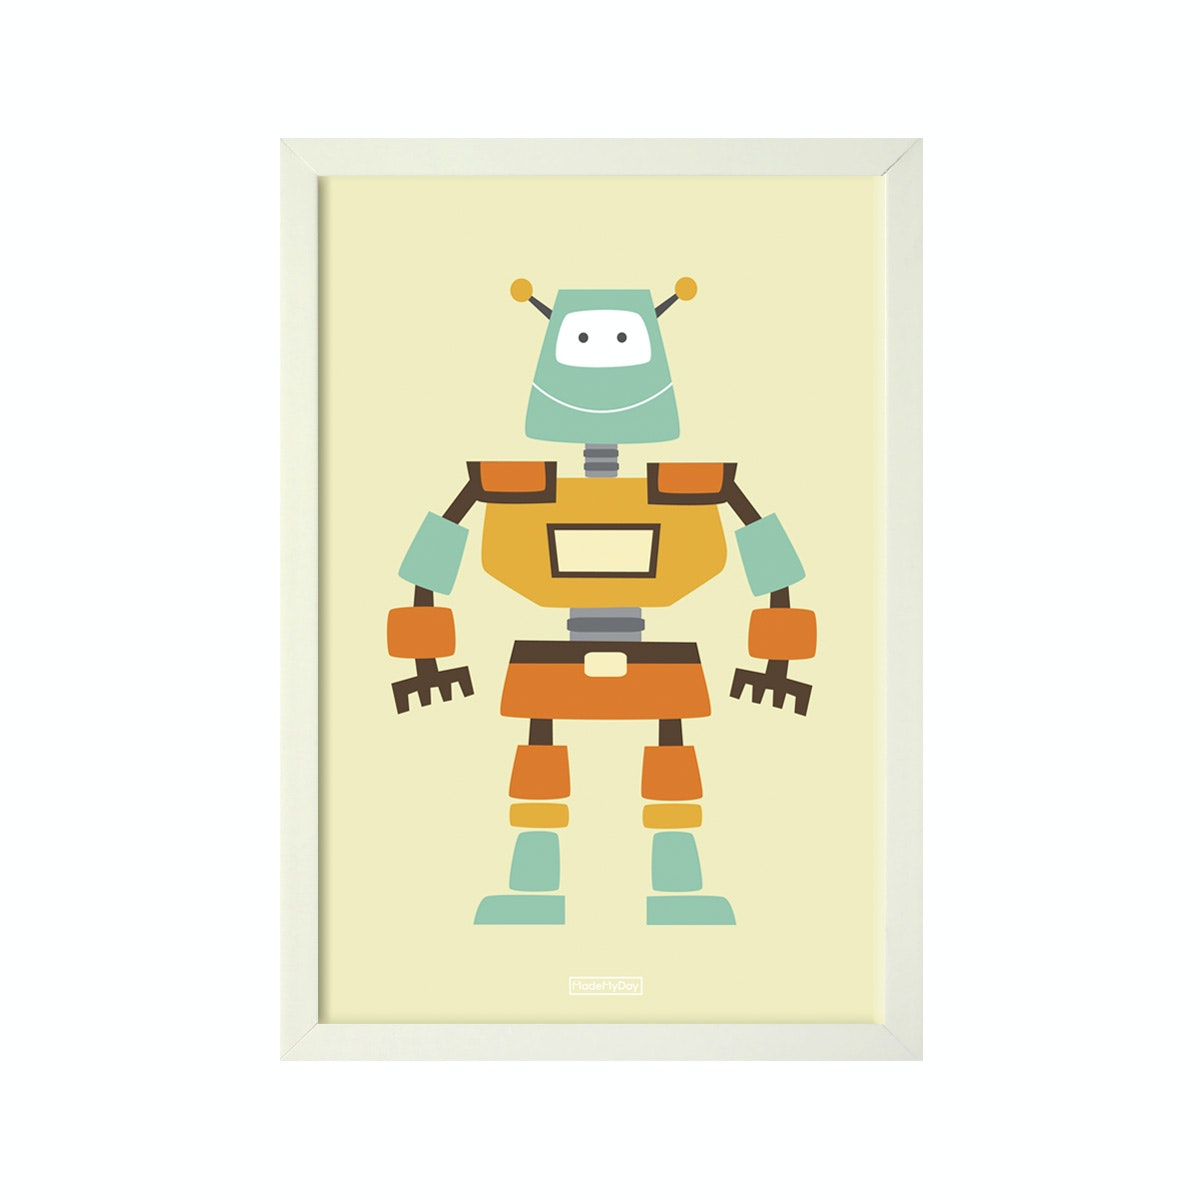 MadeMyDay Zed The Robot (20X30cm)